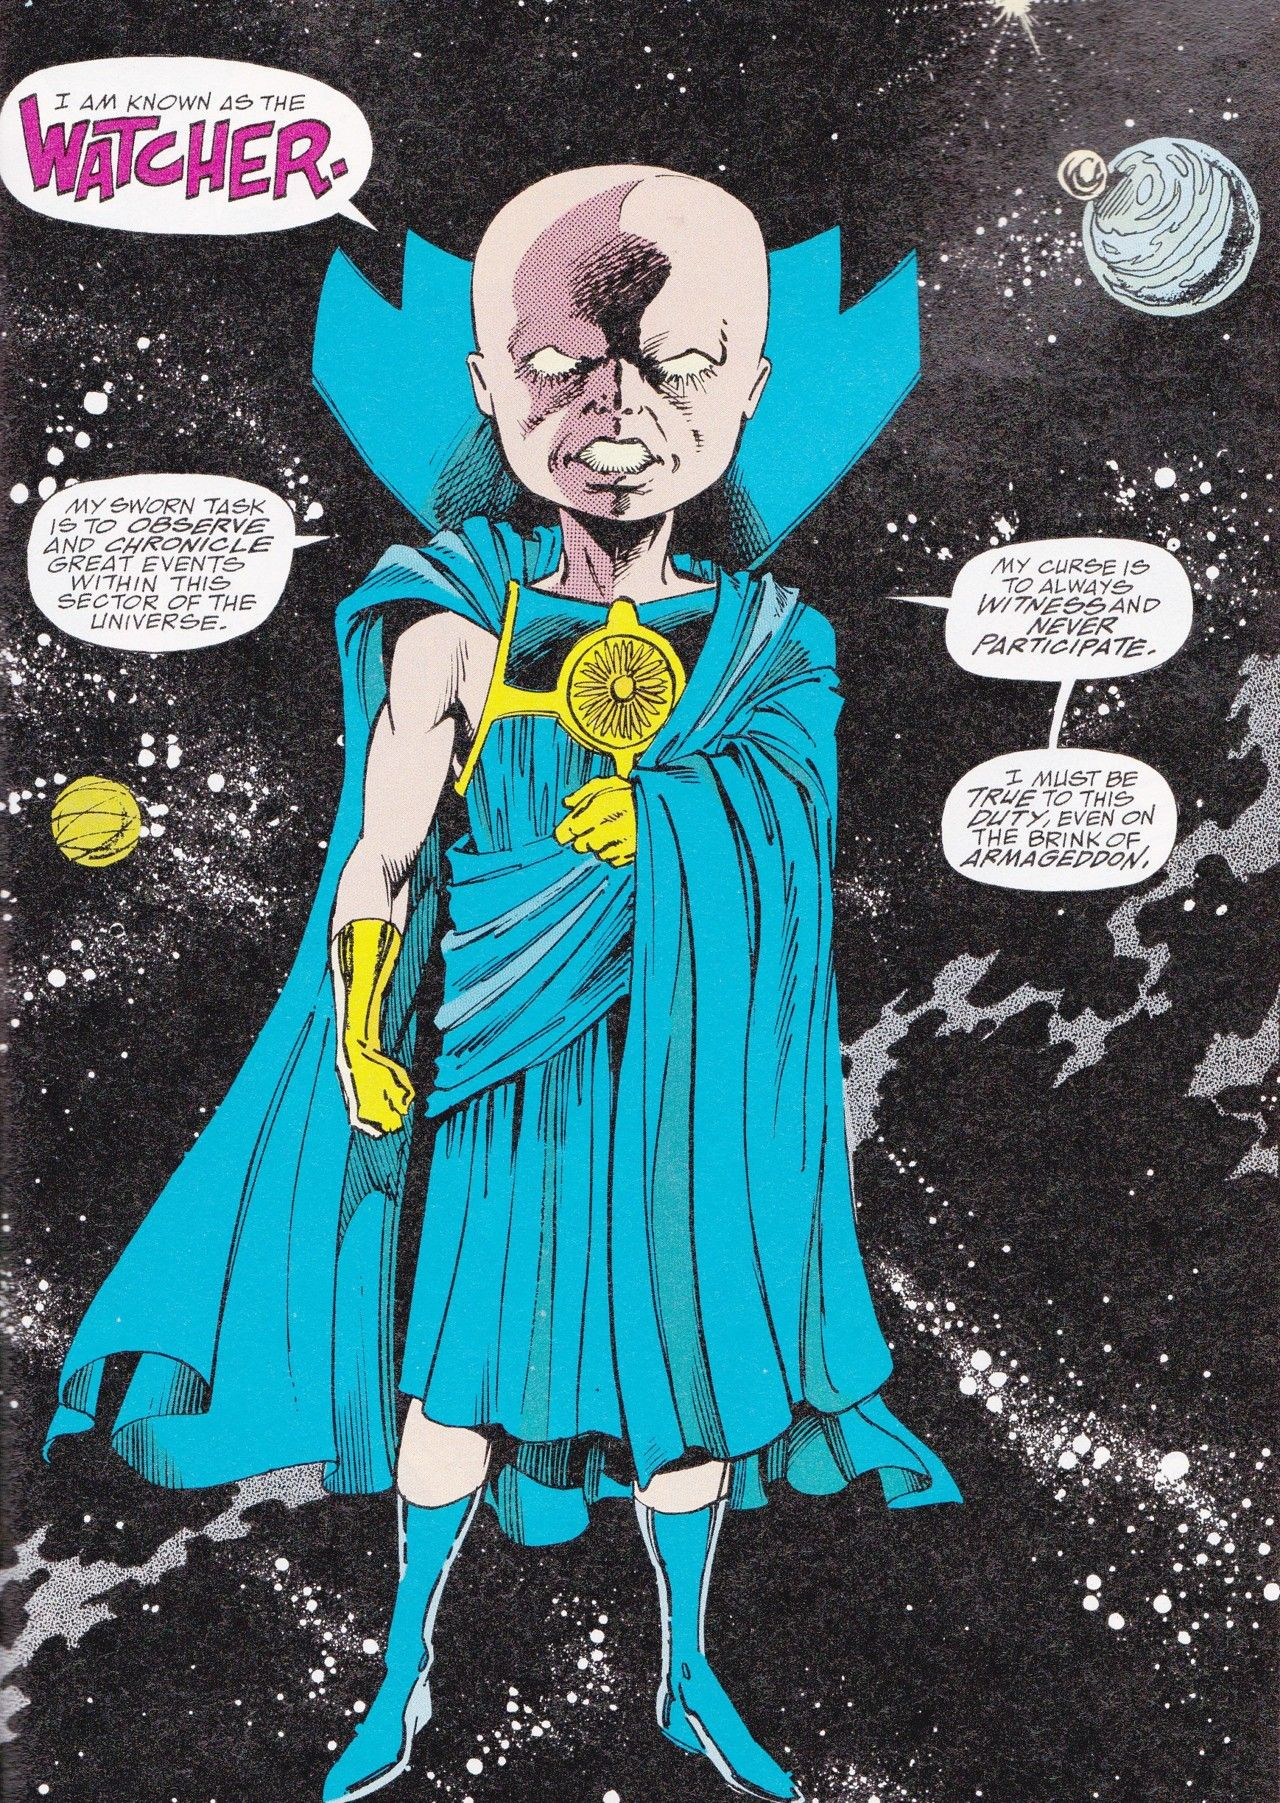 First appearance of Uatu the Watcher. We face a challenge to our freedom